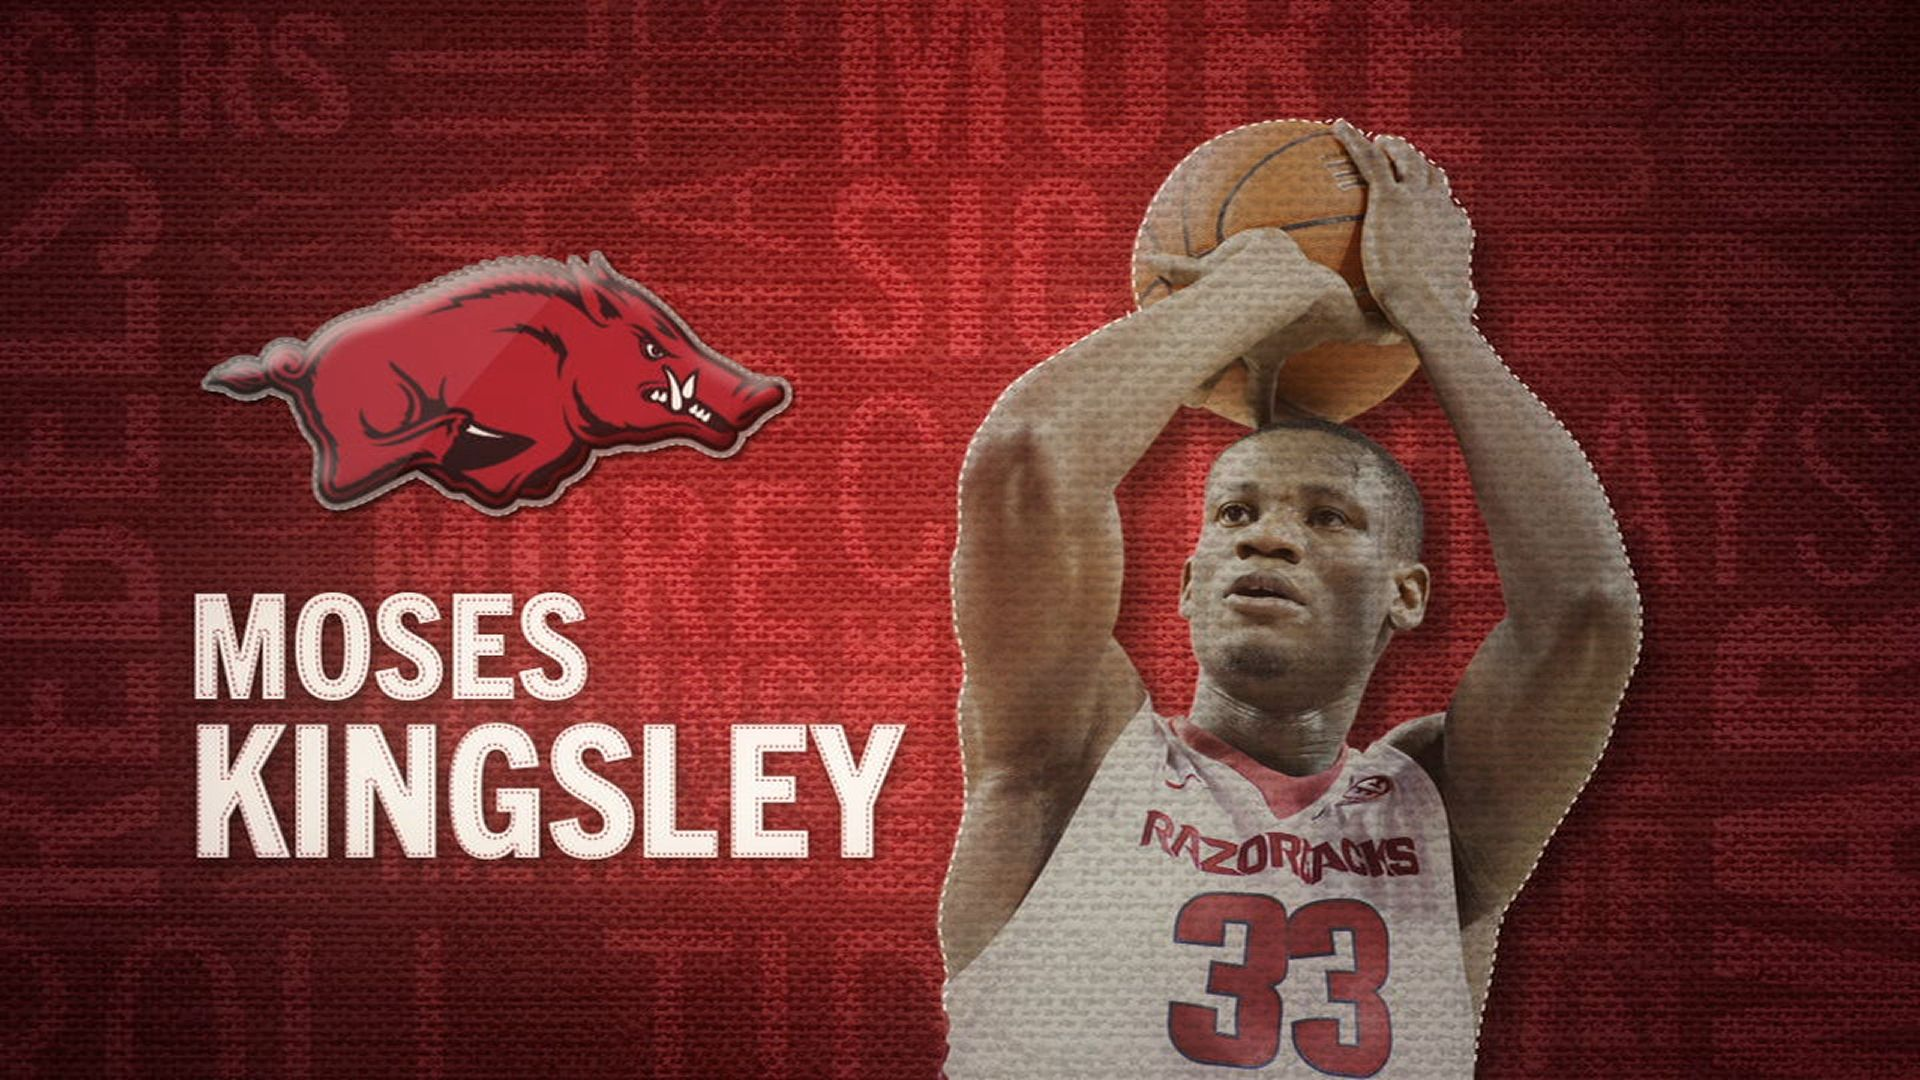 I am the SEC: Arkansas' Moses Kingsley